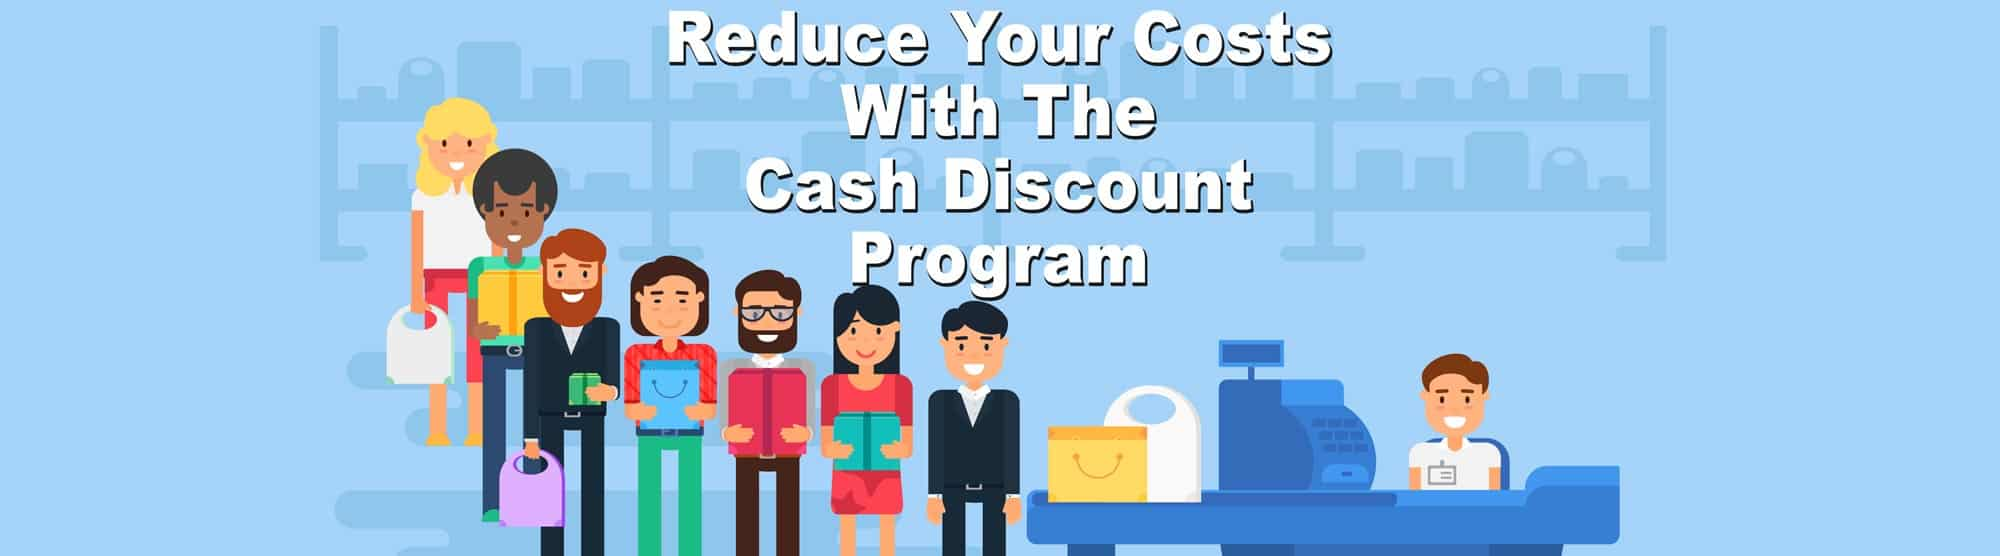 reduce merchant services costs with cash discount program